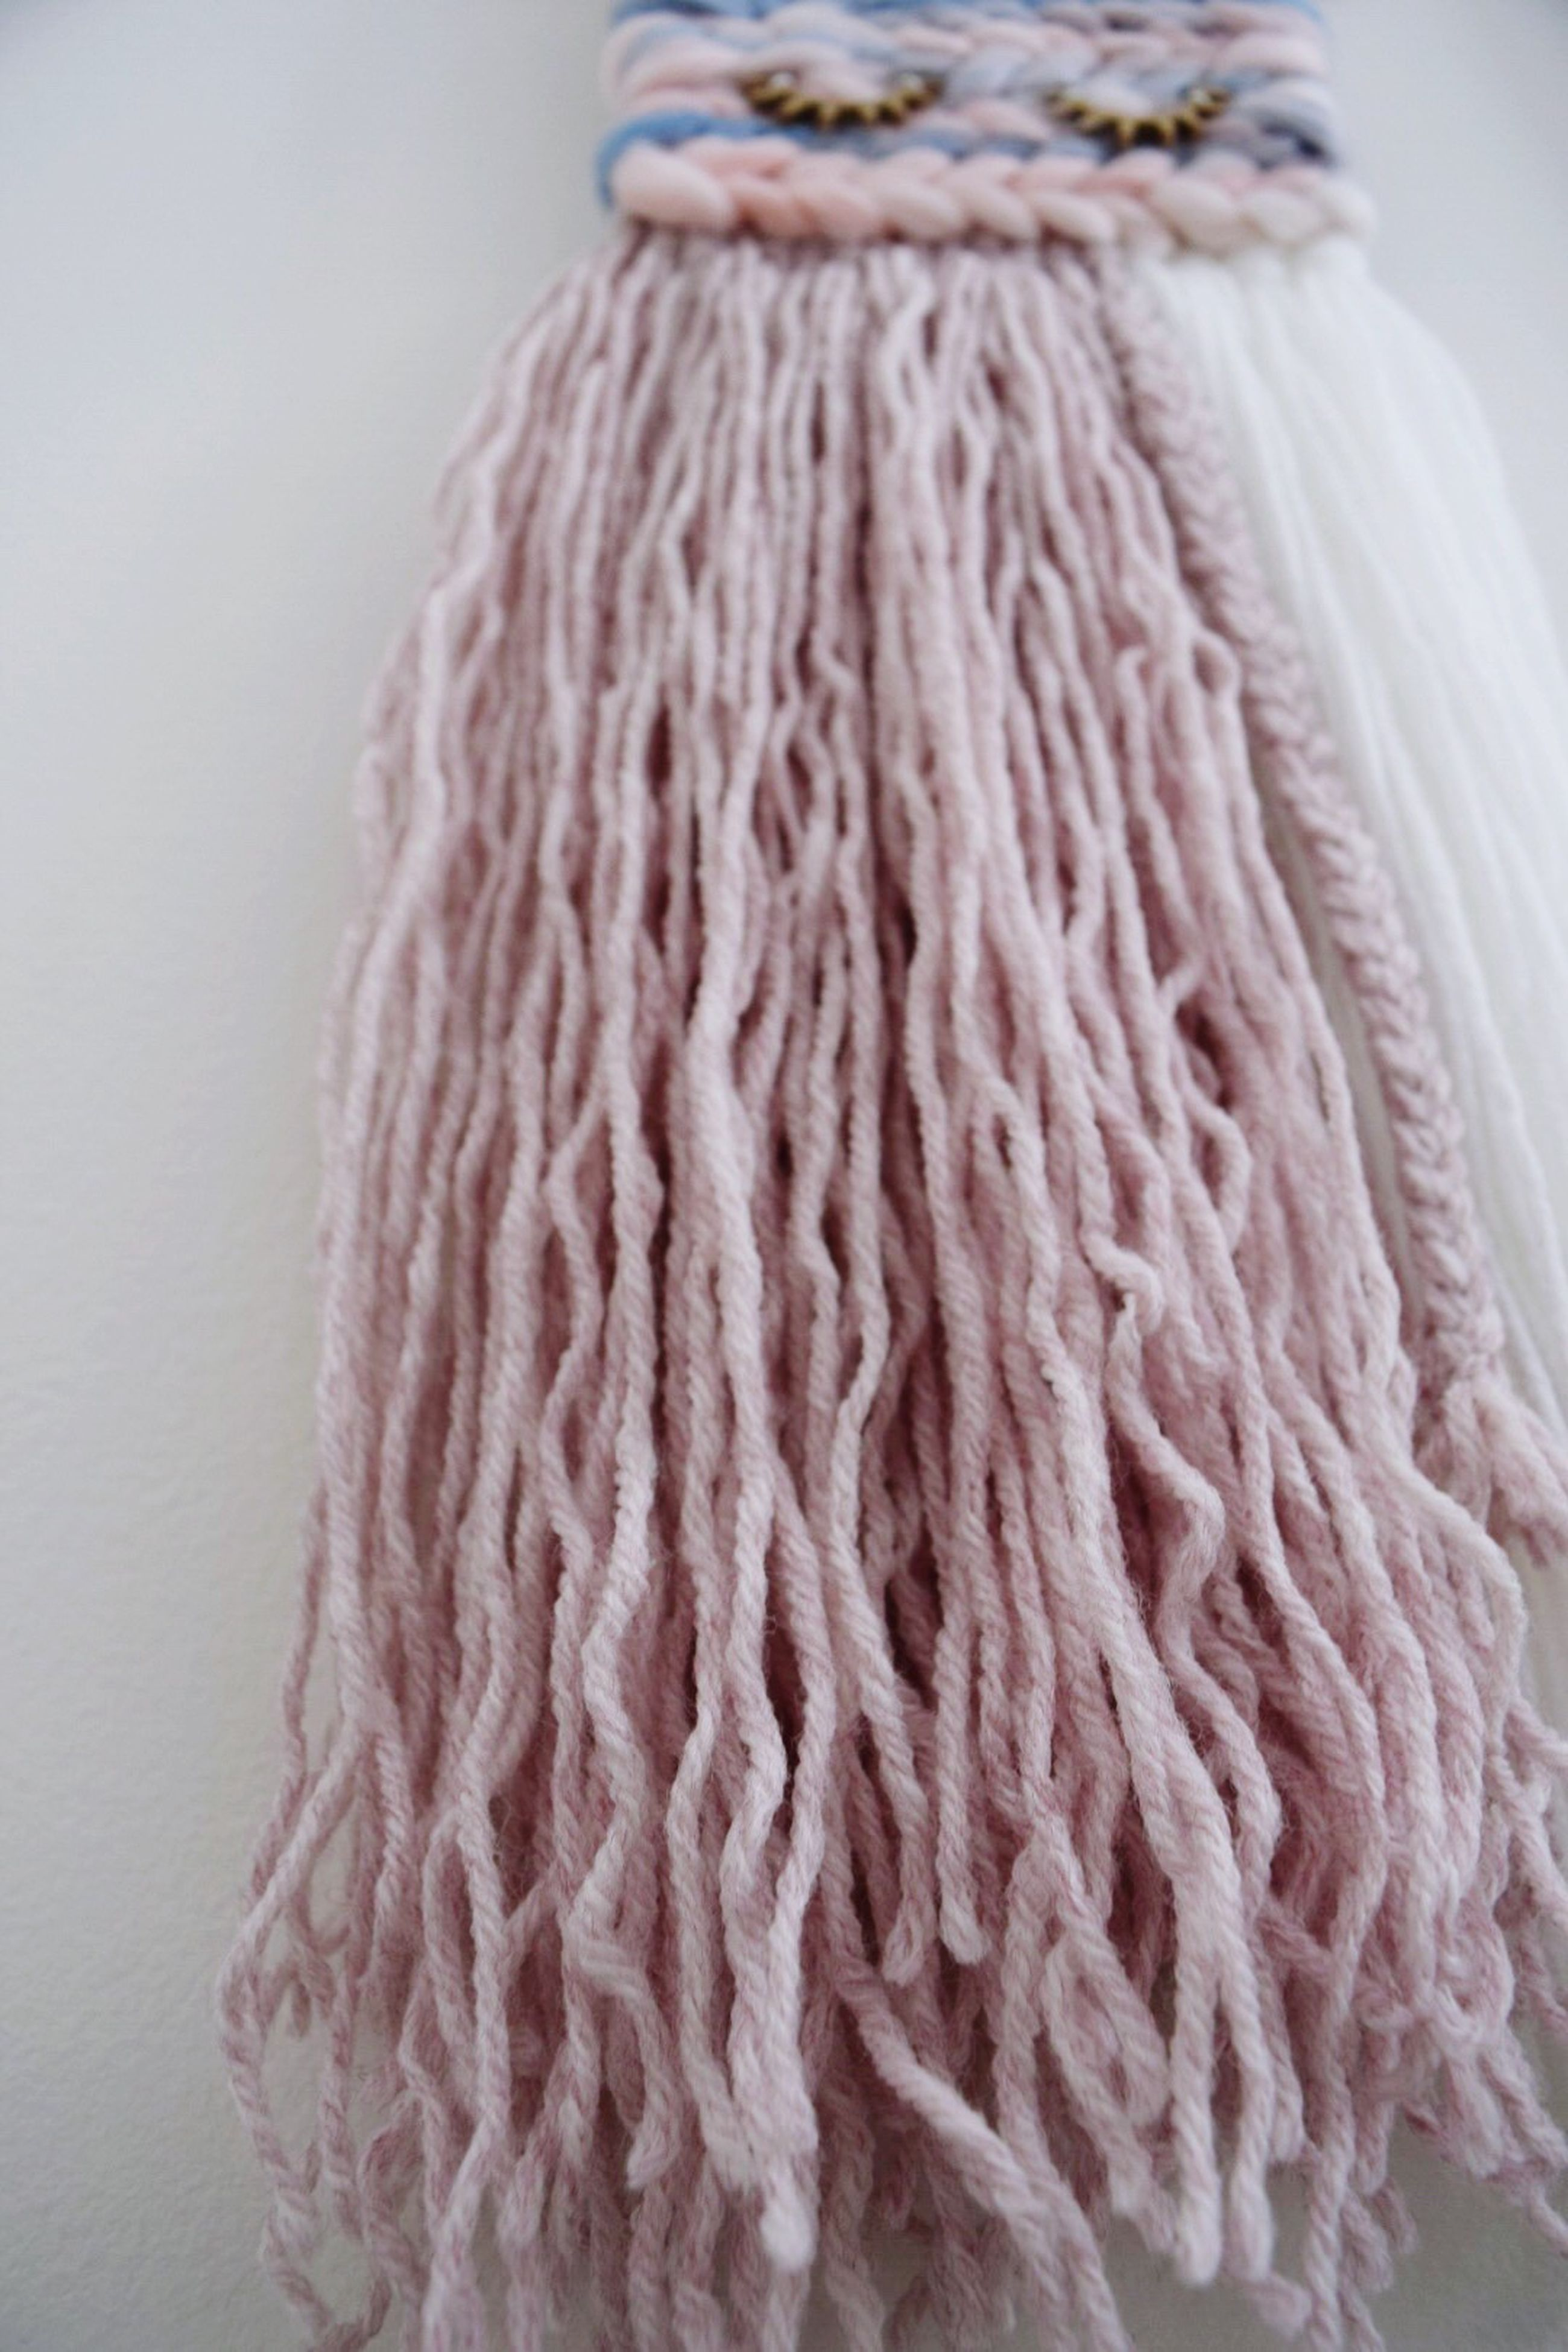 indoors, close-up, food, brown, freshness, food and drink, raw food, string, softness, wool, extreme close-up